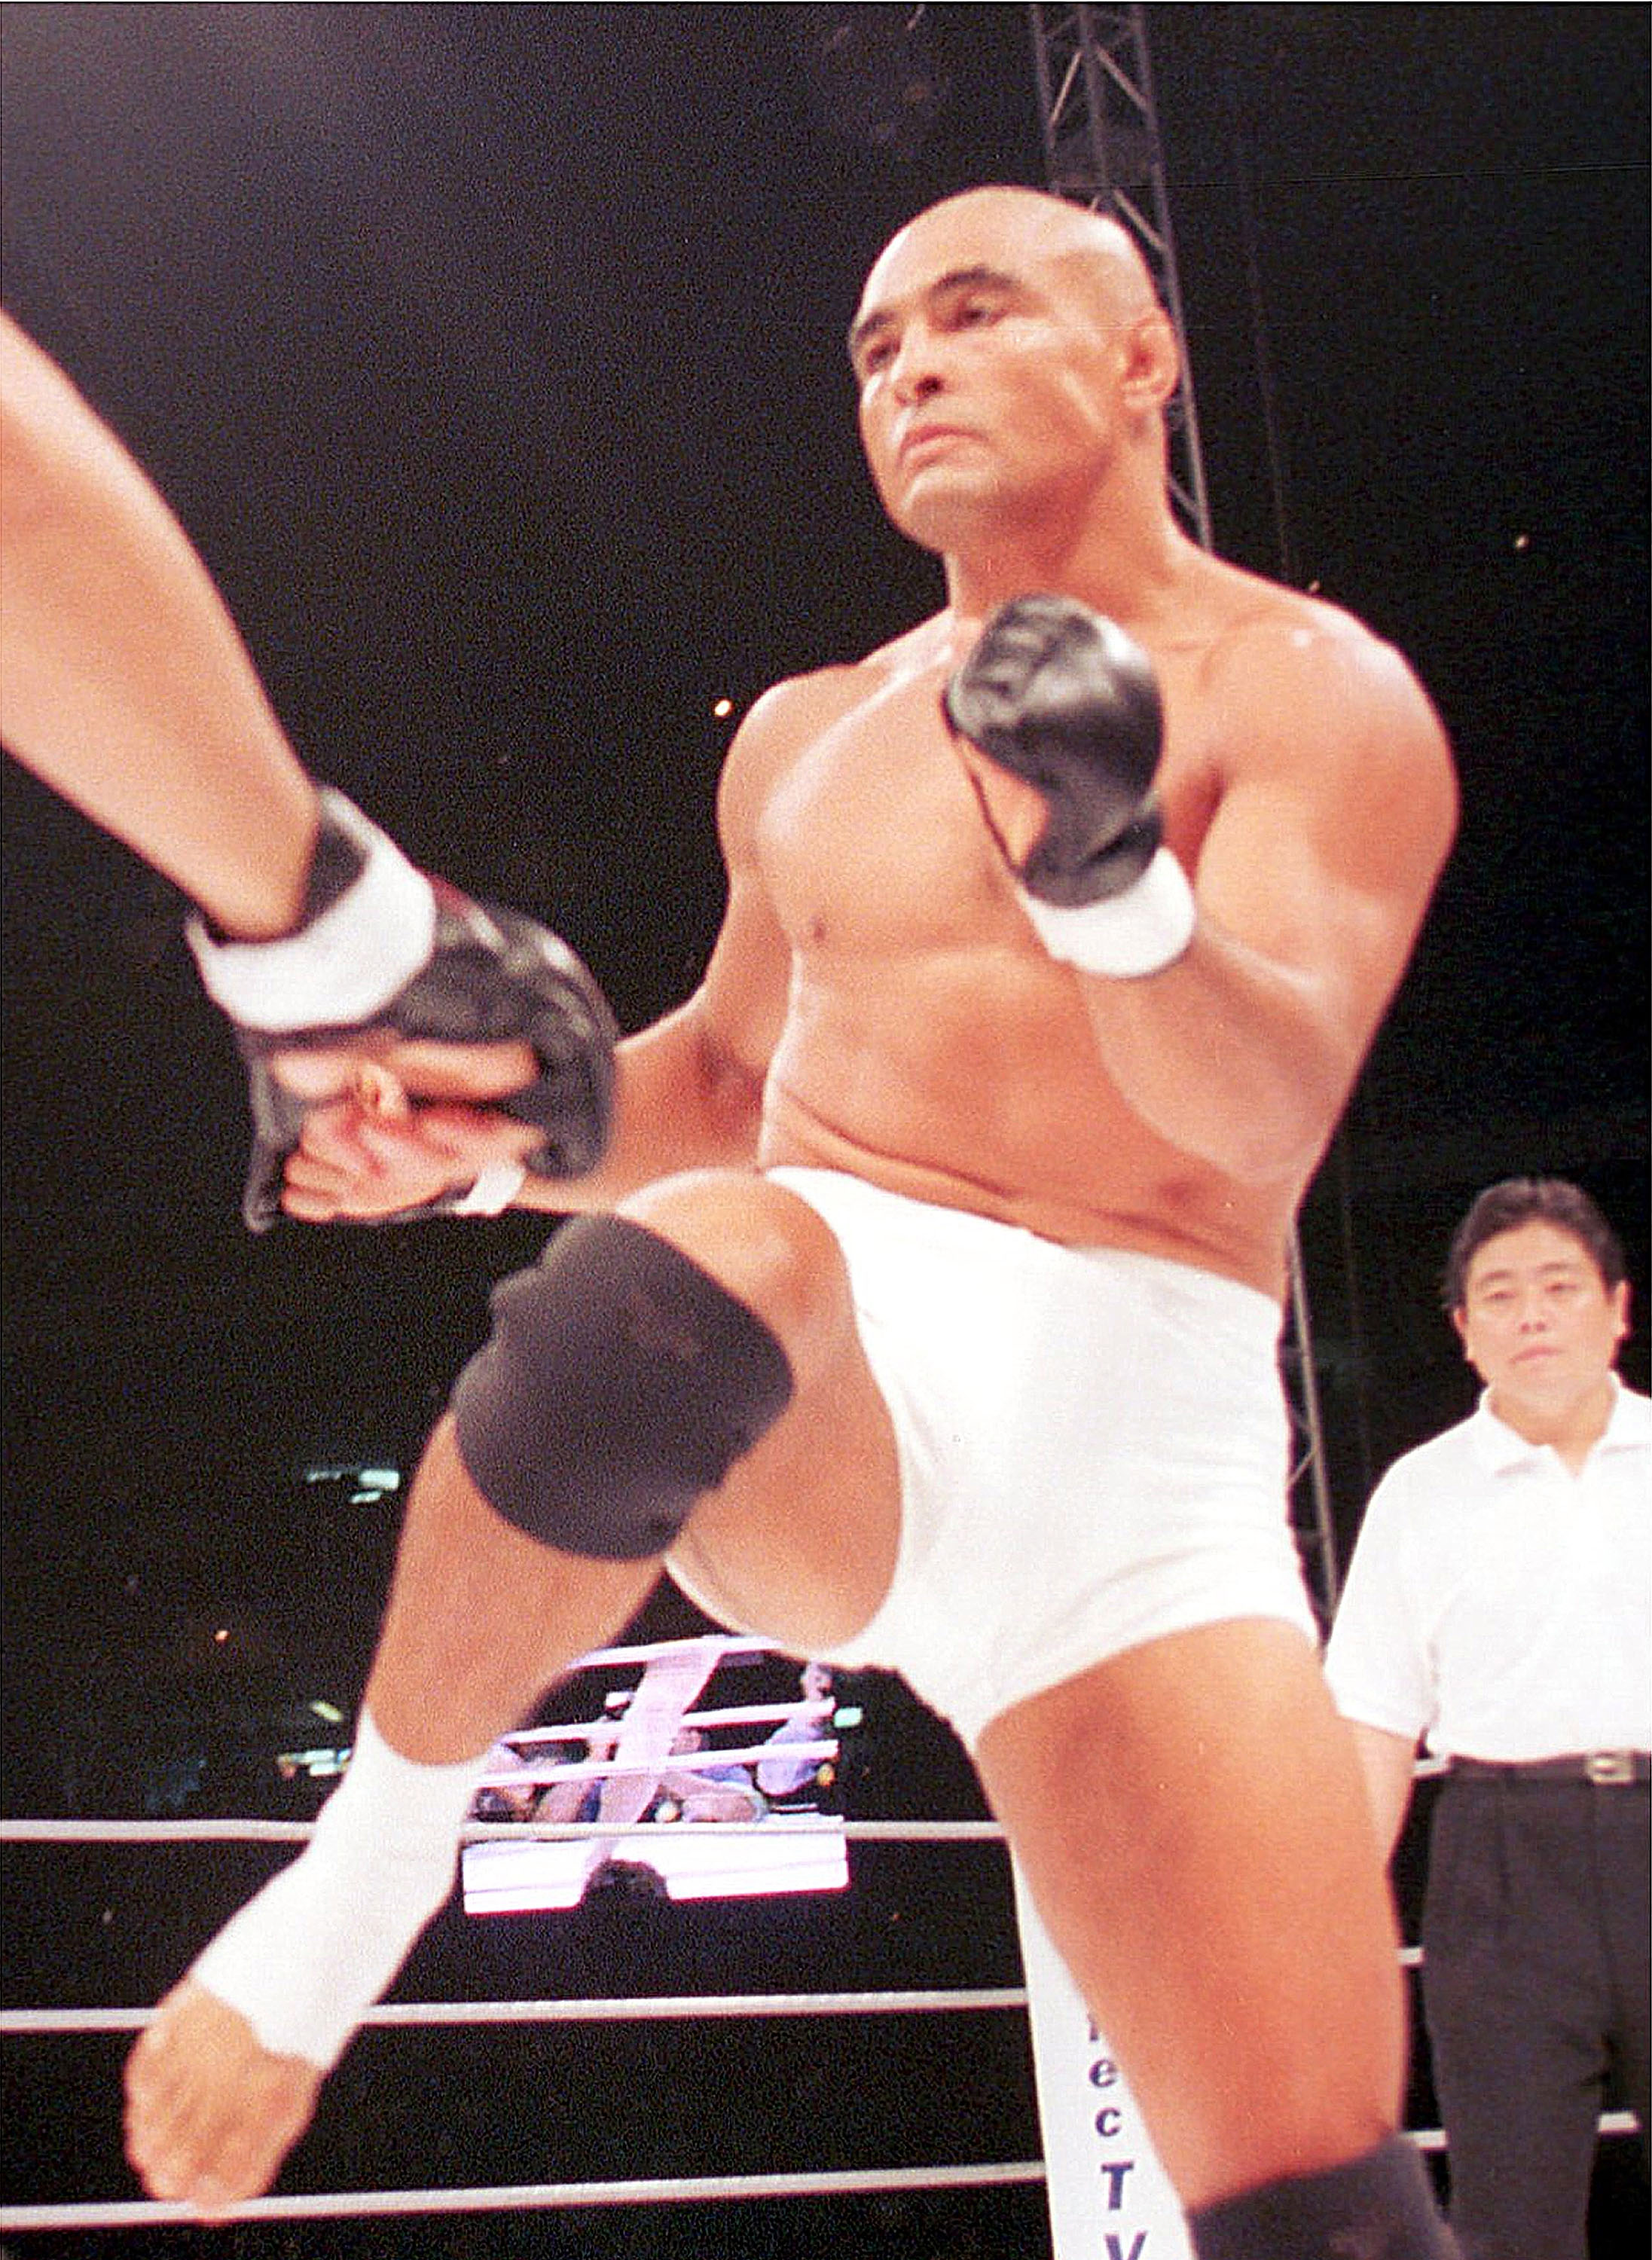 TOKYO, JAPAN - MAY 26: (JAPANESE NEWSPAPERS OUT) Rickson Gracie competes in the match against Masakatsu Funaki during the Colosseum 2000 at Tokyo Dome on May 26, 2000 in Tokyo, Japan.